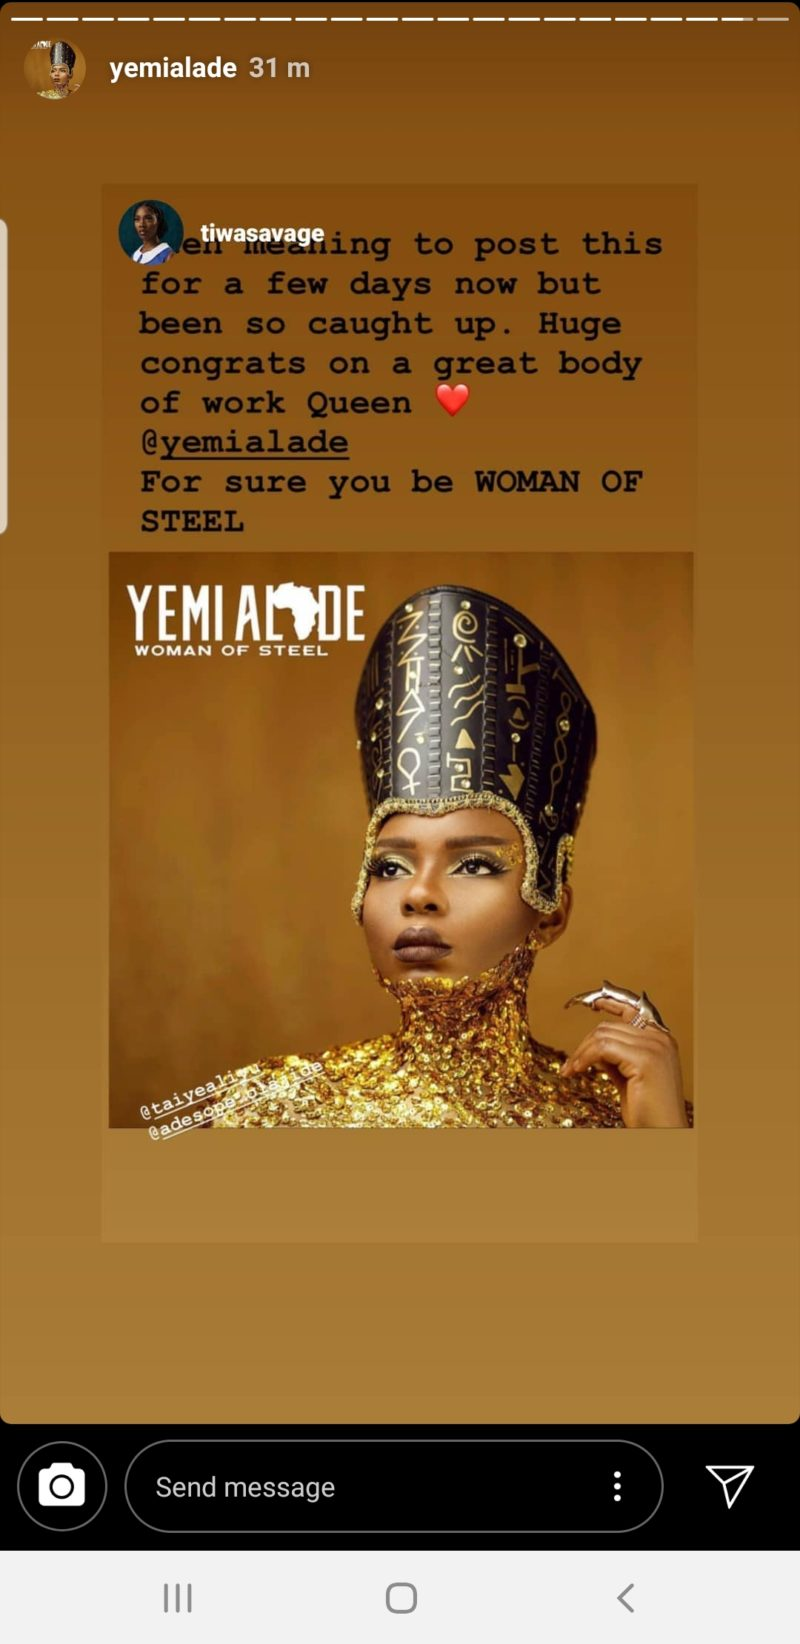 Tiwa Savage finally ends her beef with Yemi Alade, Posts Yemi Alade's 'Woman Of Steel' Album Cover Art